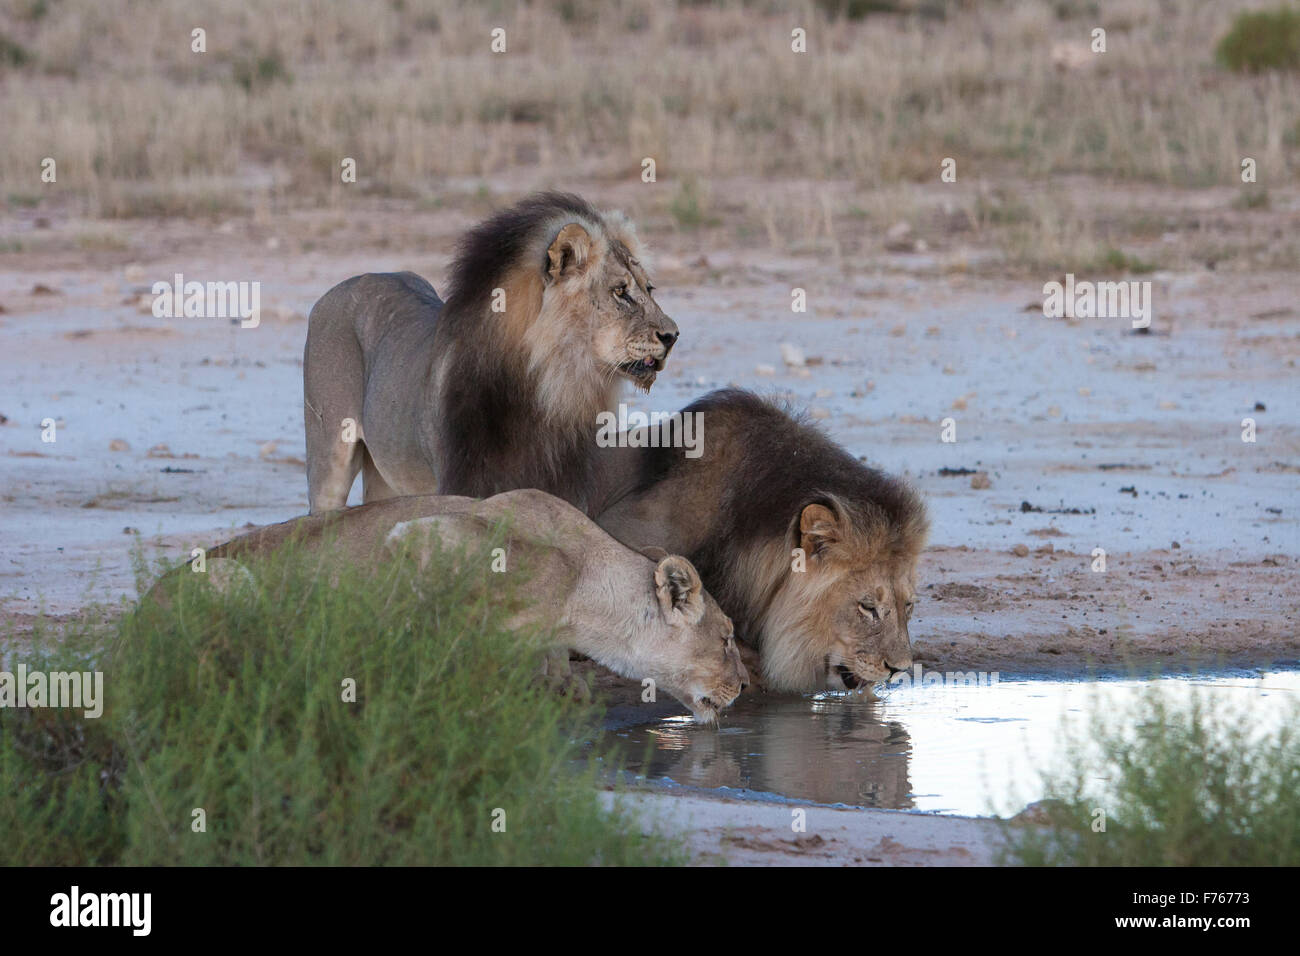 Two male lions and a lioness drinking water from a pan in the Kgalagadi Transfrontier Park - Stock Image